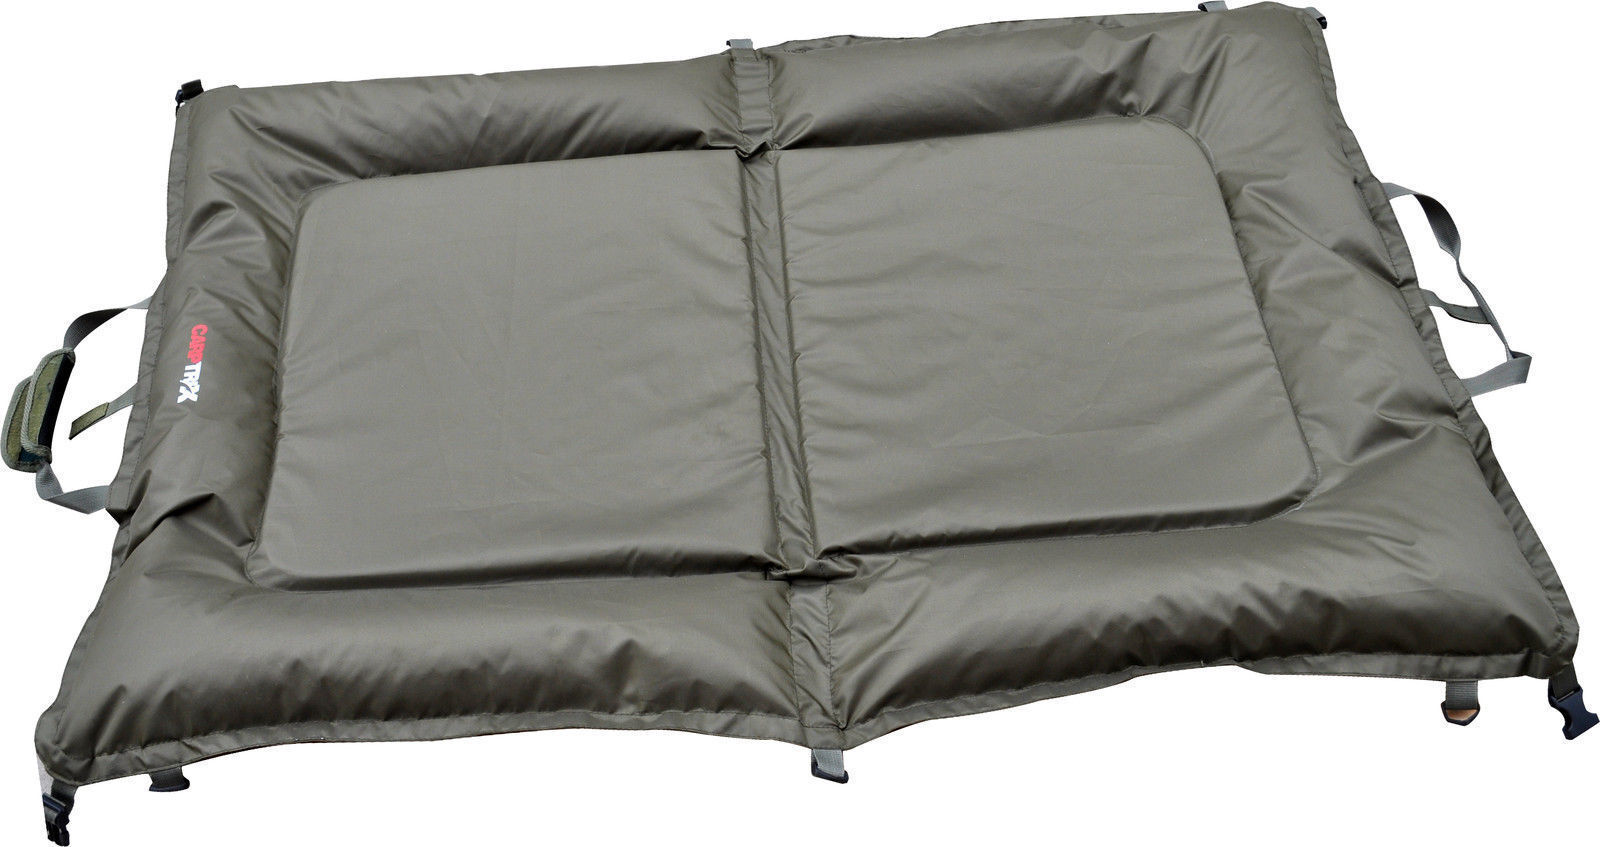 Fishing Carp Care, Full Range of Unhooking Mats, Cradles, Weigh Slings